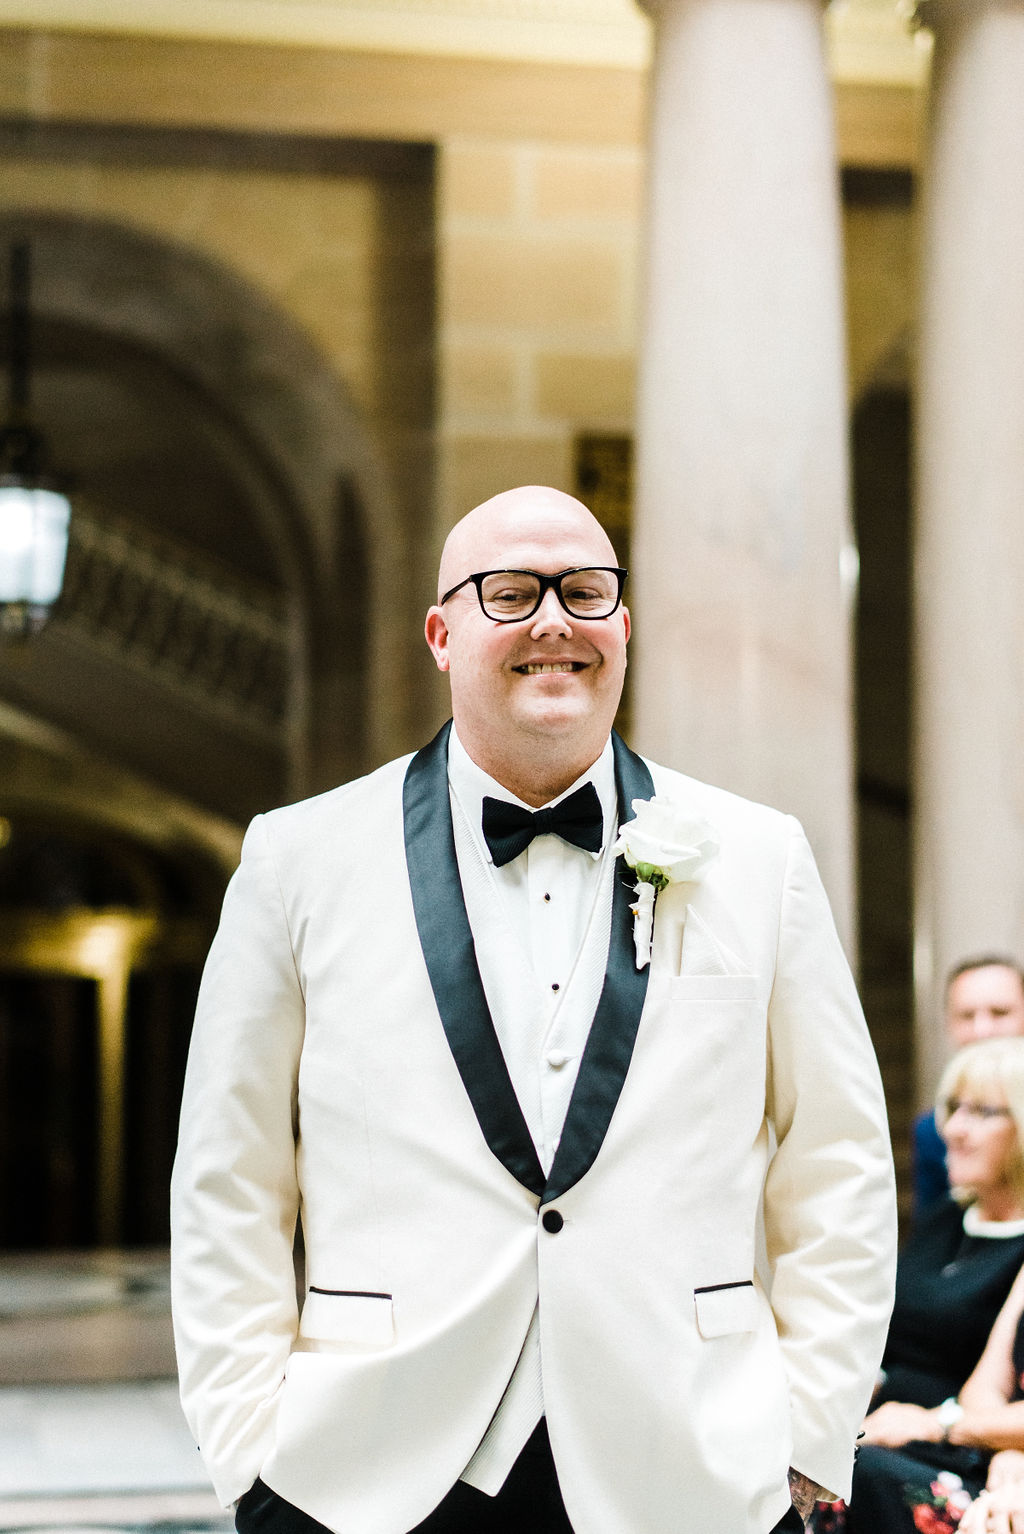 The groom waiting for his bride to walk down the aisle. He is wearing a white vera wang suit with black bow tie. - Pearl Weddings & Events